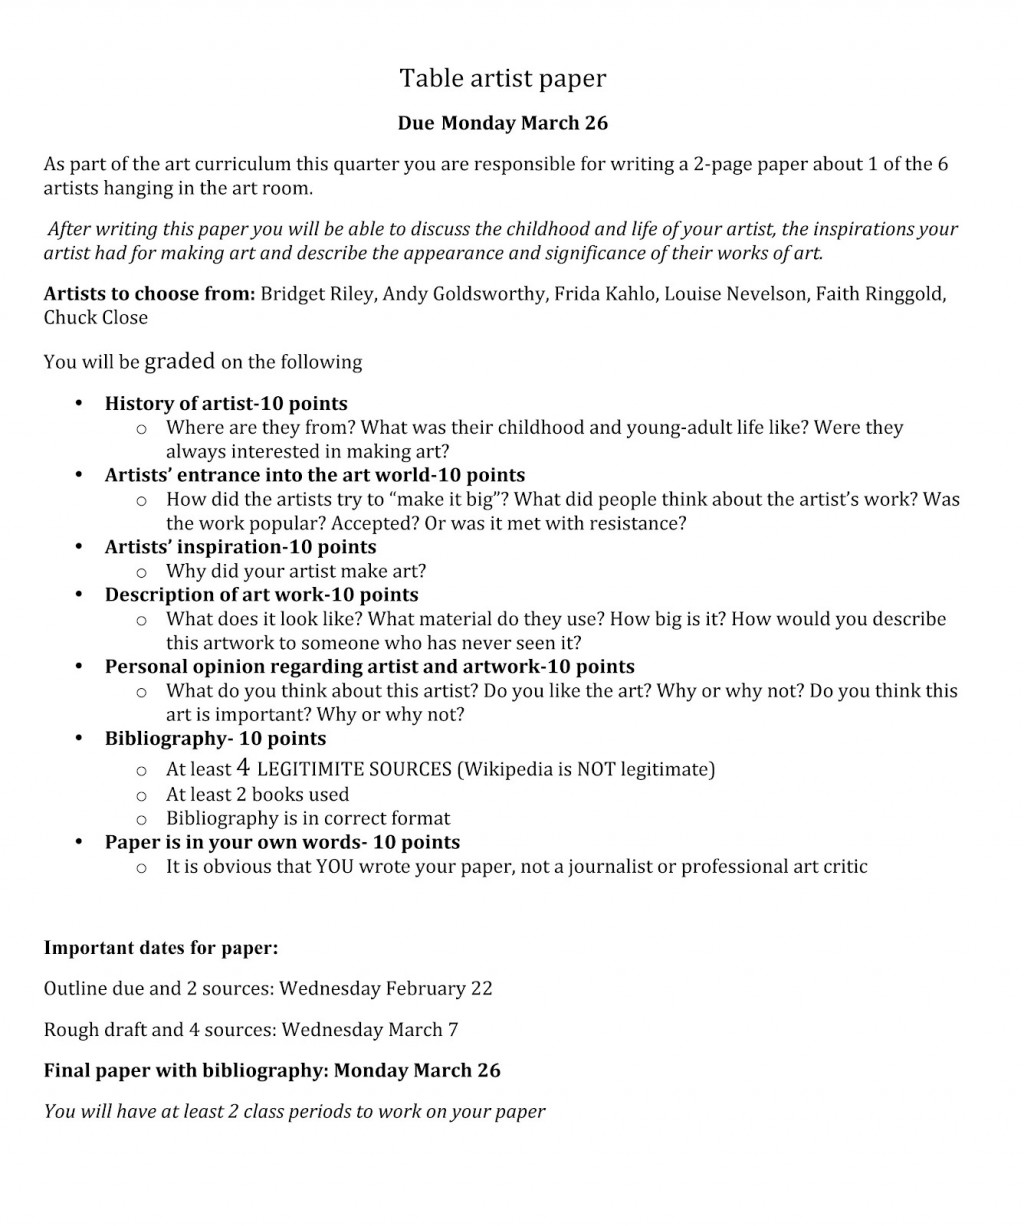 009 Tableartistpaper Examples Of Interview Questions For Research Dreaded A Paper Large